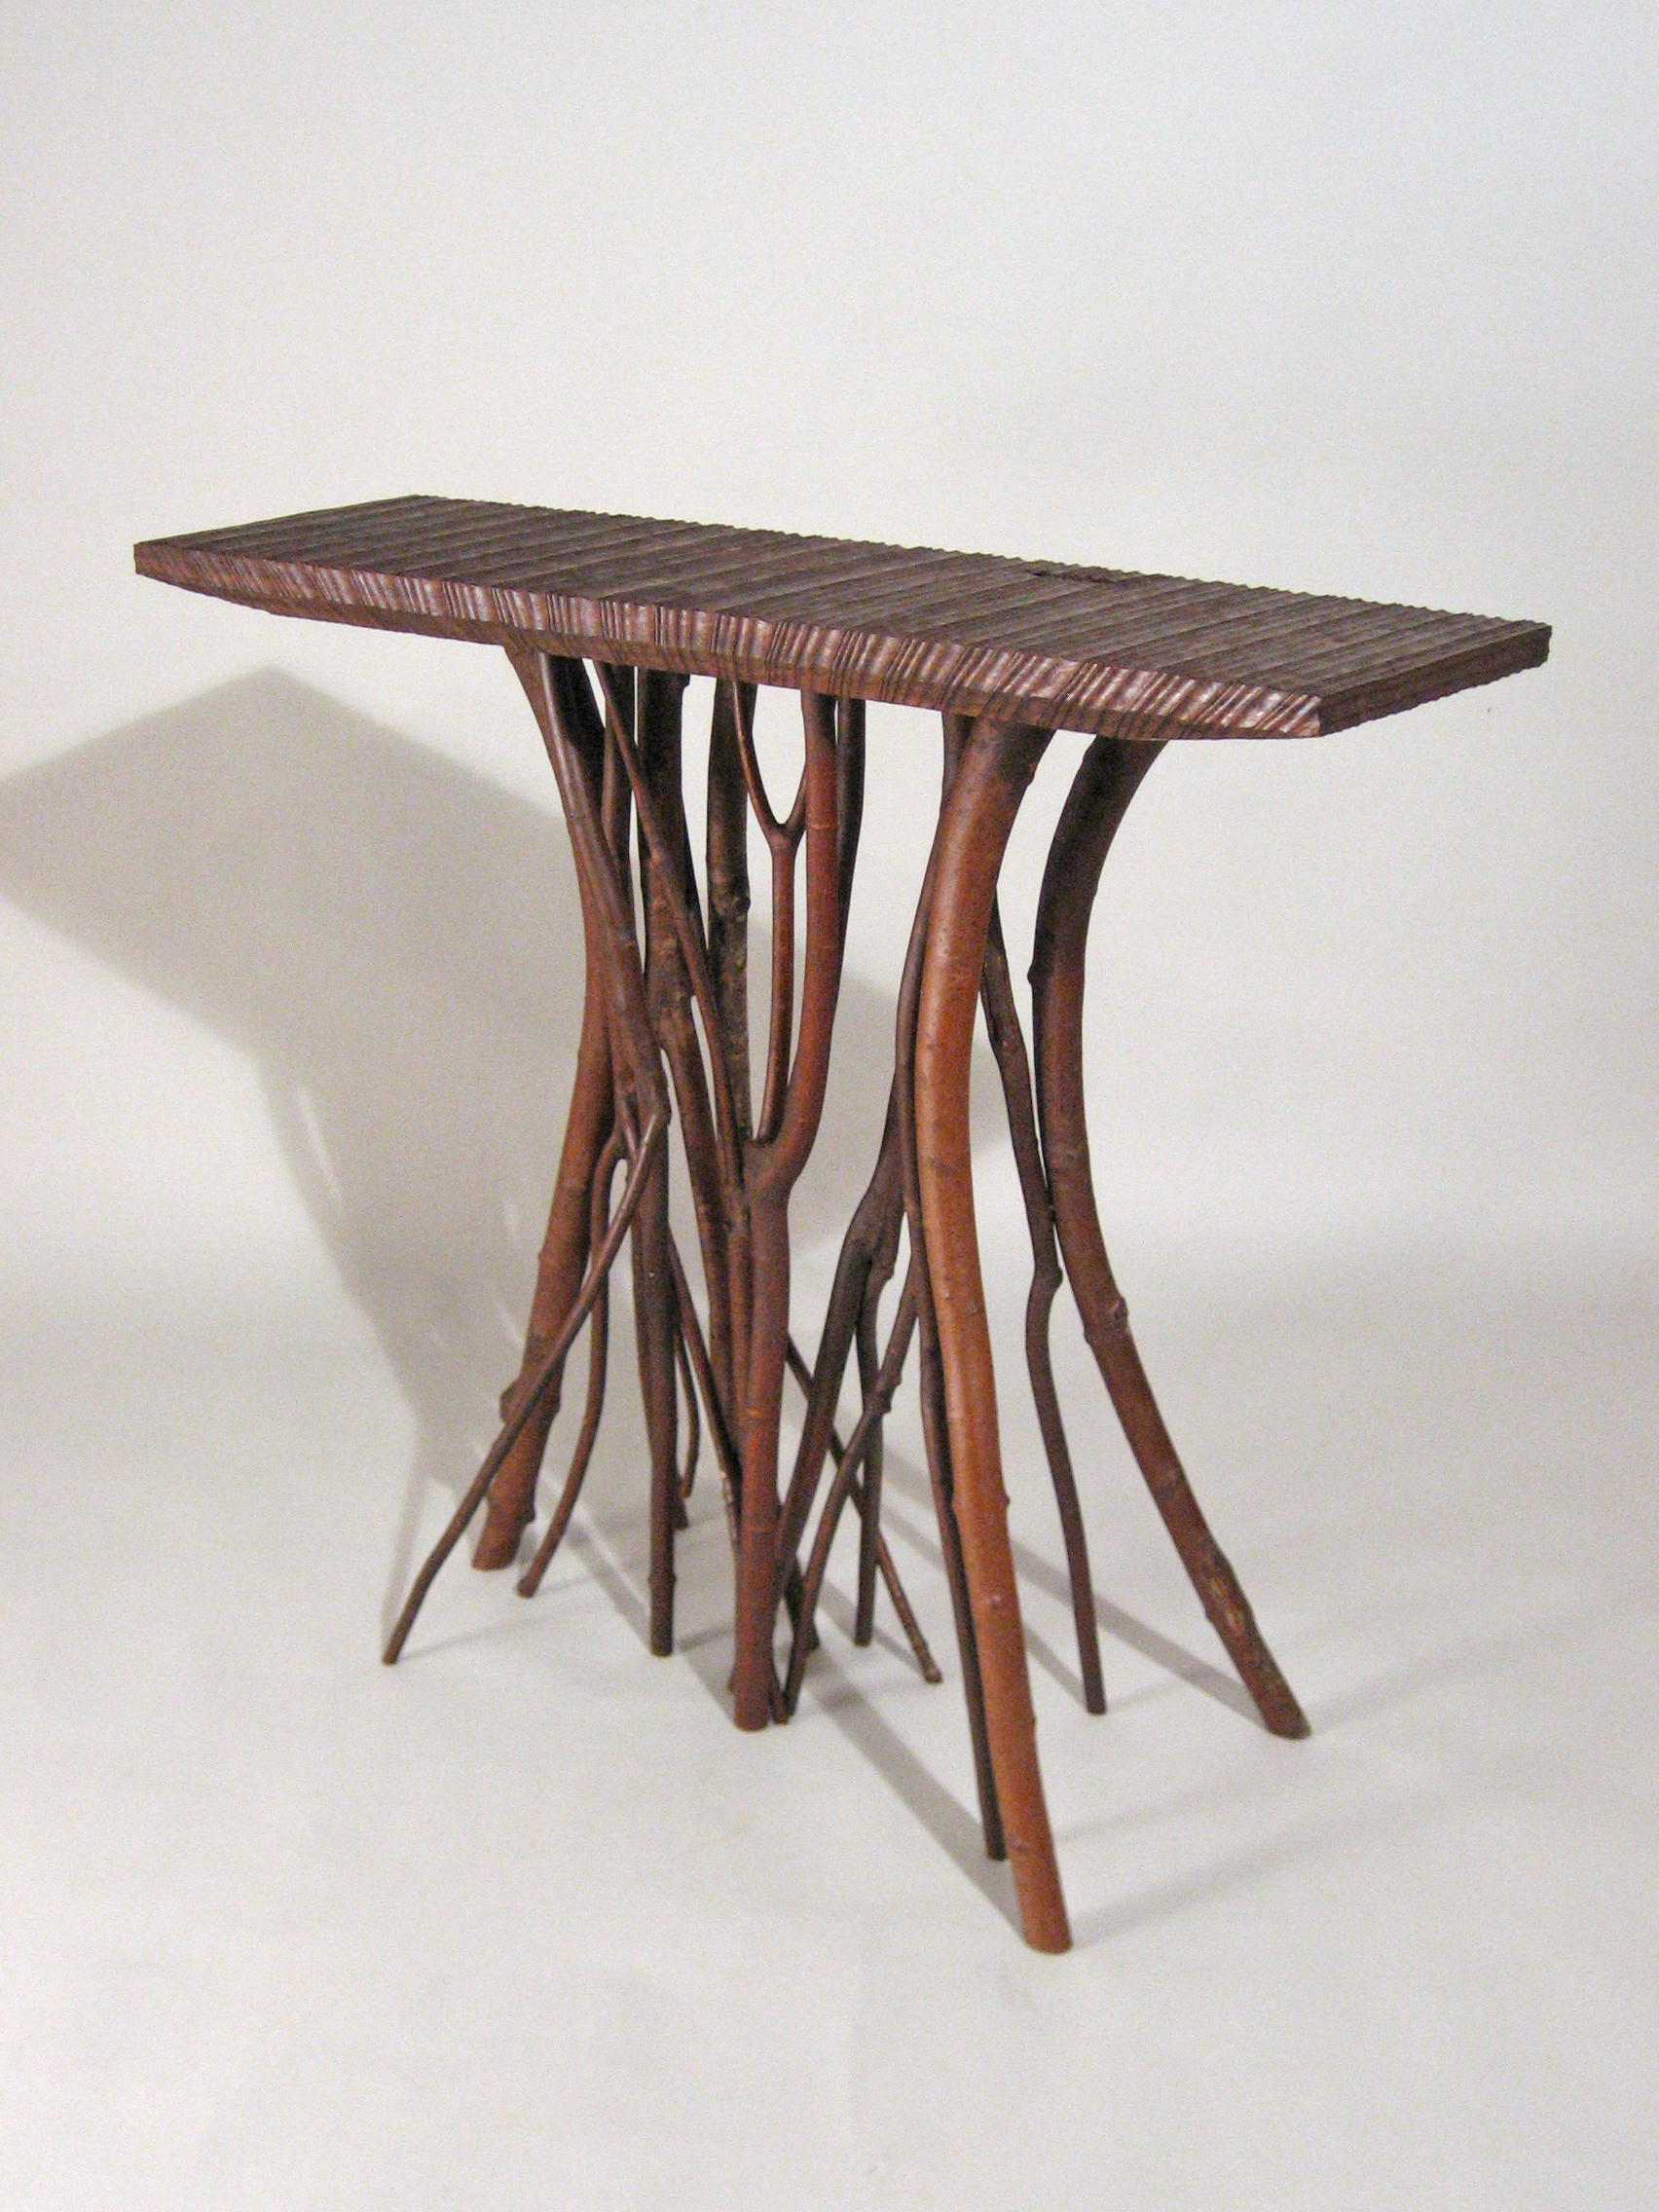 05 Walnut Hall Table